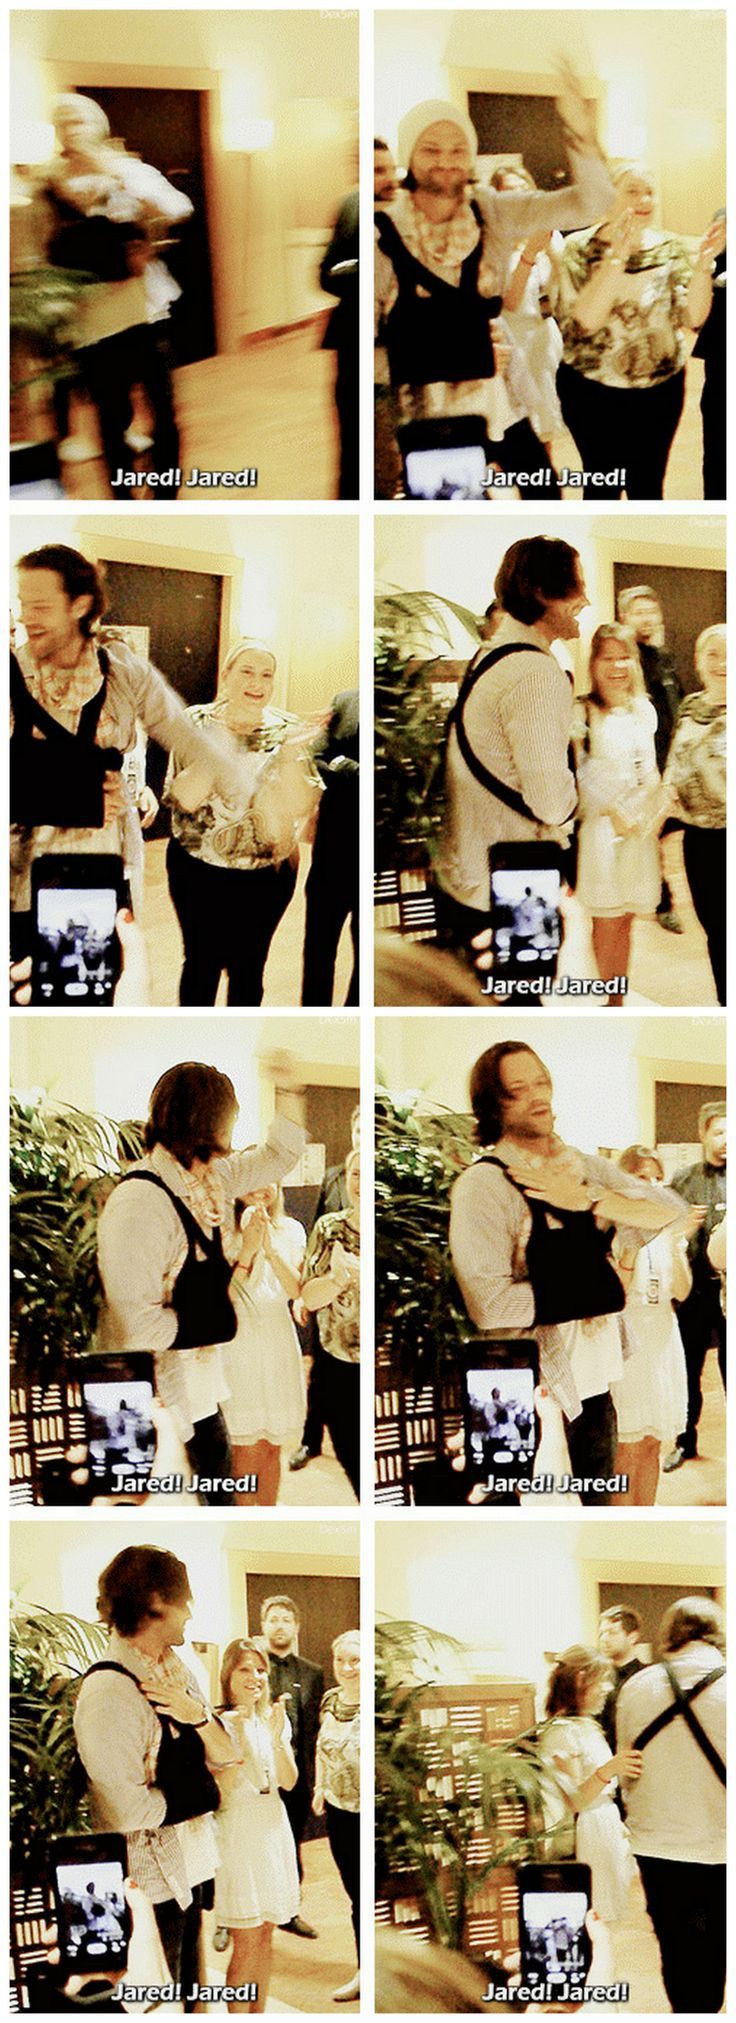 [gifset] Jared greeting fans after #JibCon14 In good spirits as always <3  #Jared